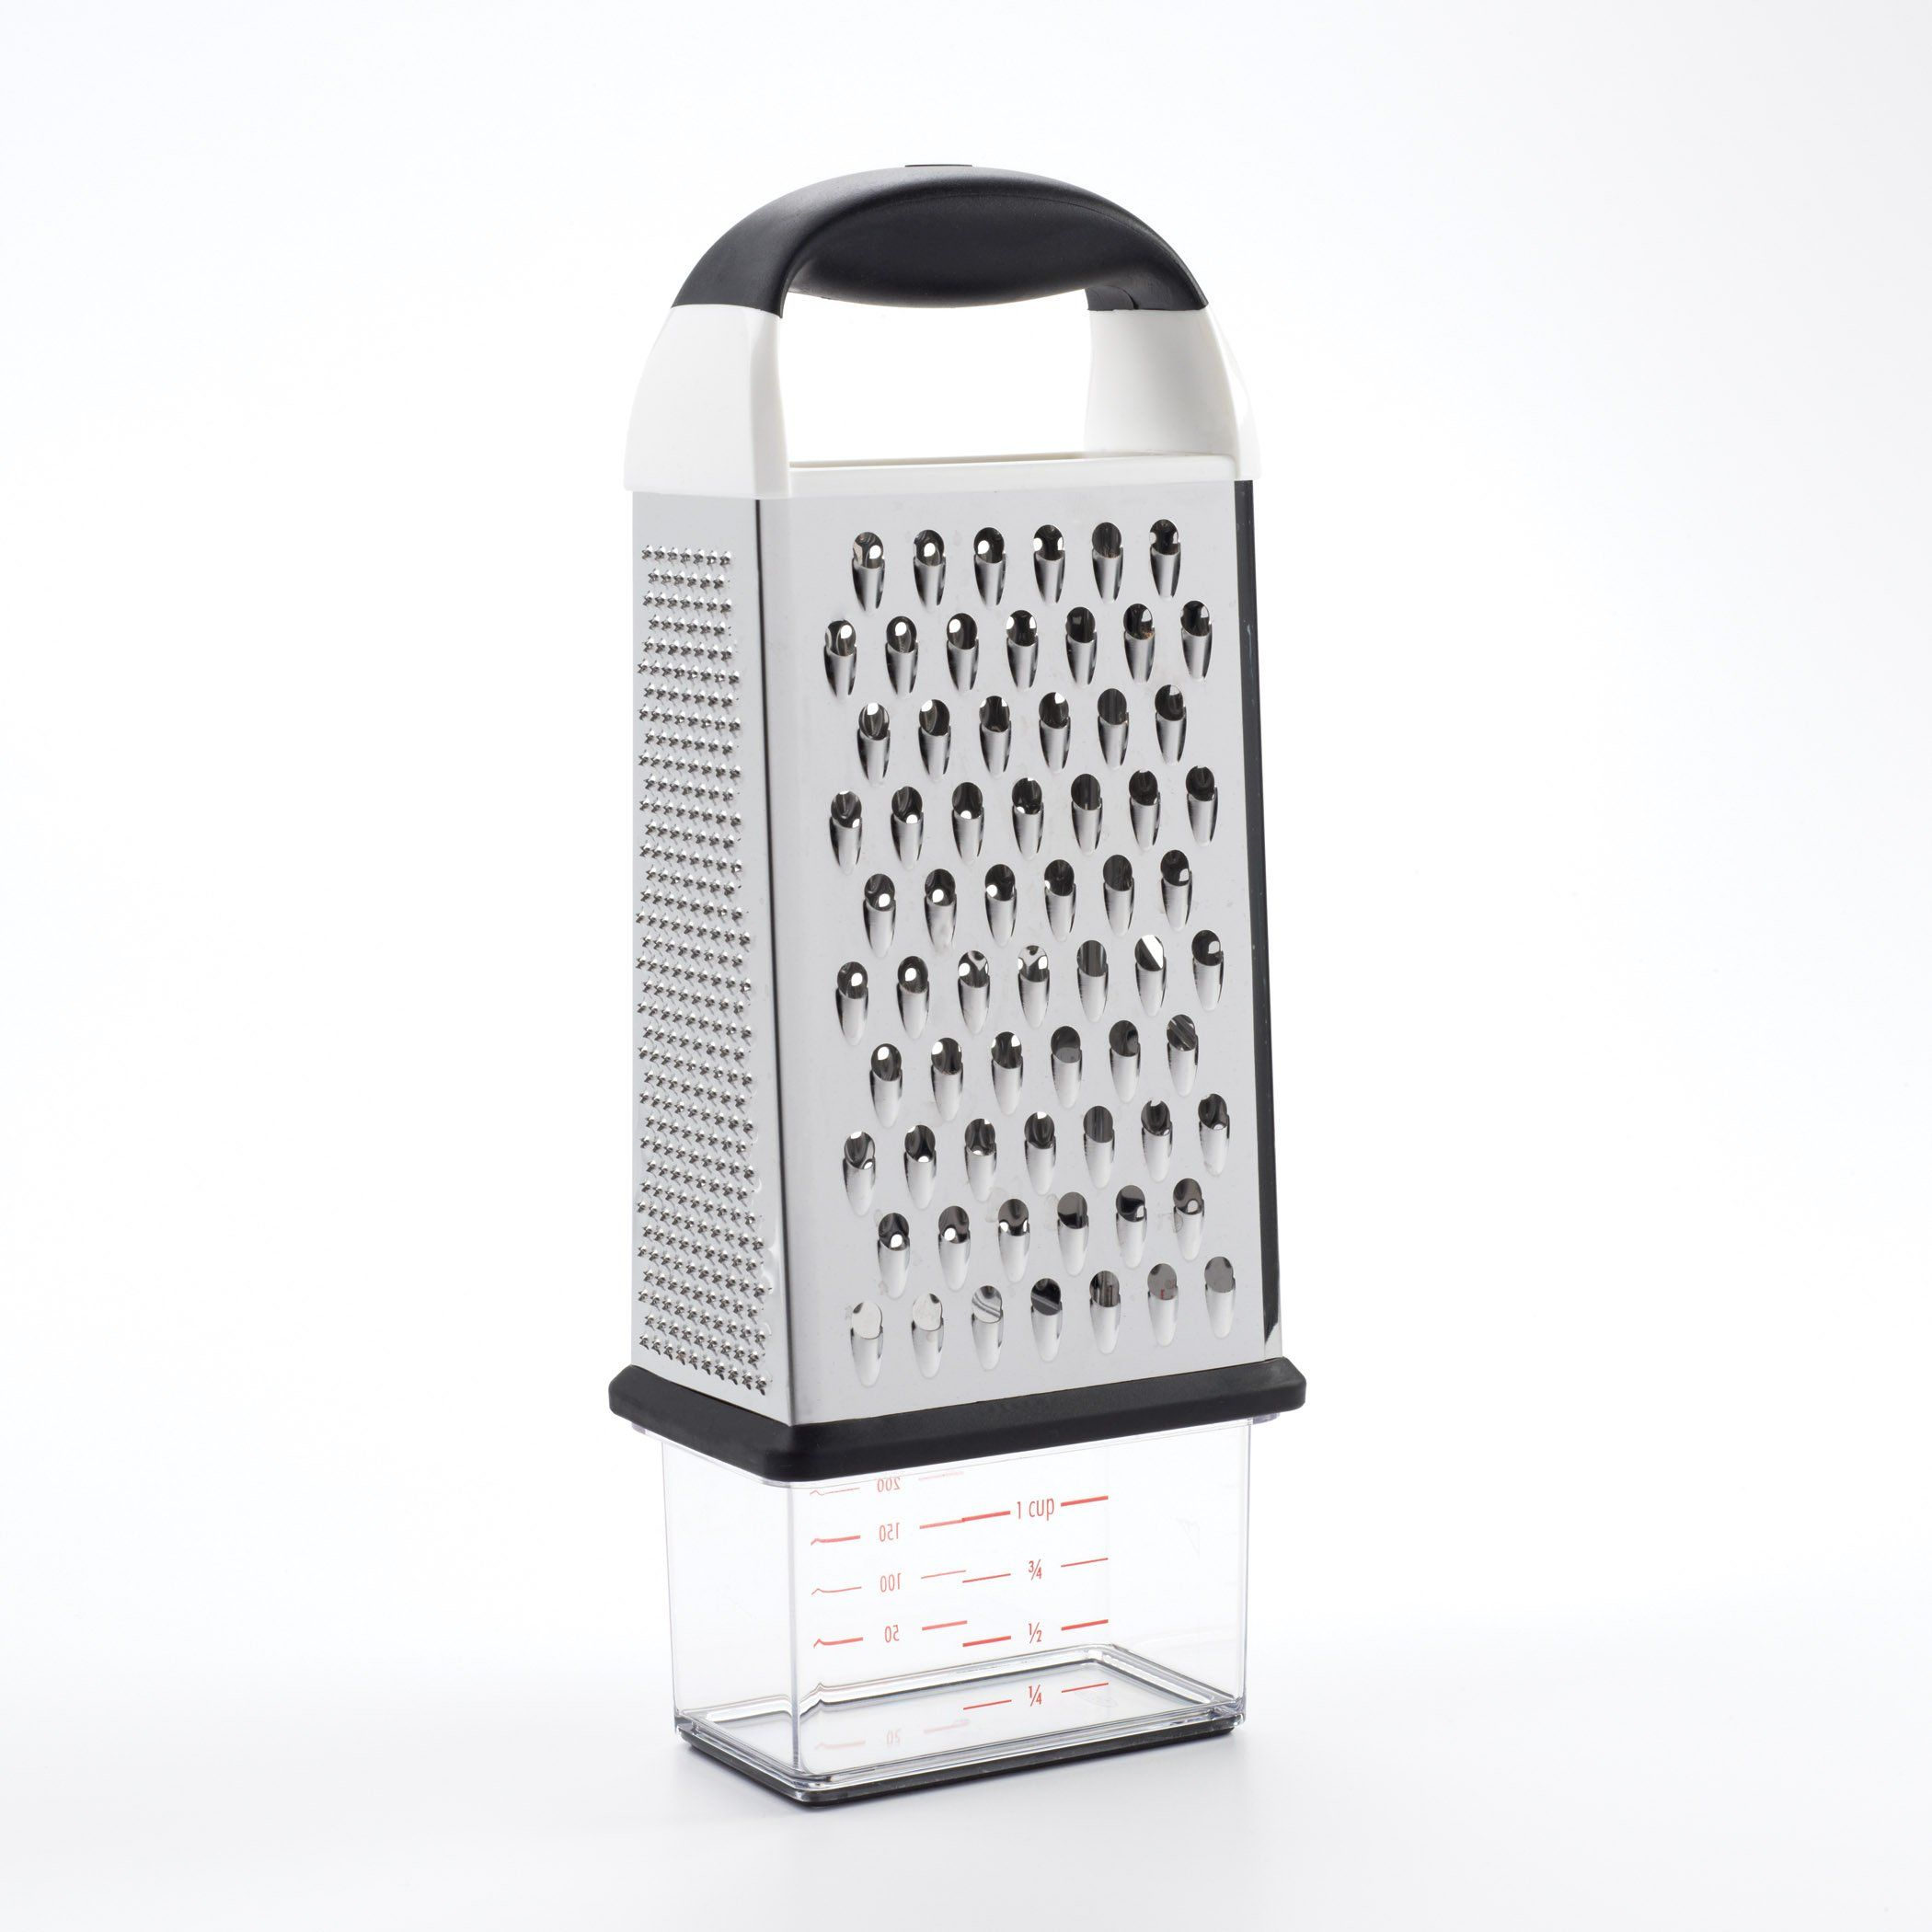 plus of sasg kitchen stuff styles grater trend marvelous utensils oxo and hand grips good